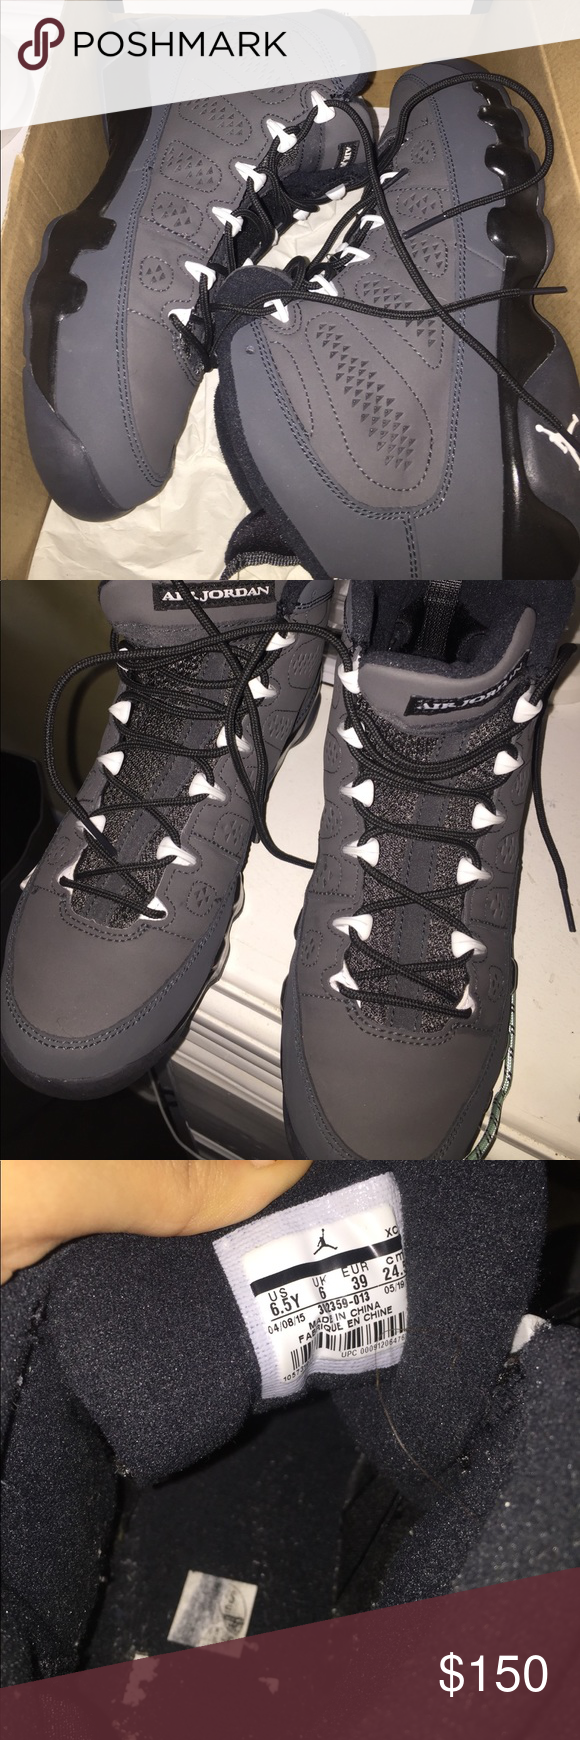 Jordan 9 anthracite Worn only a few times in like new condition size 6.5y is a women's 8 Shoes Sneakers